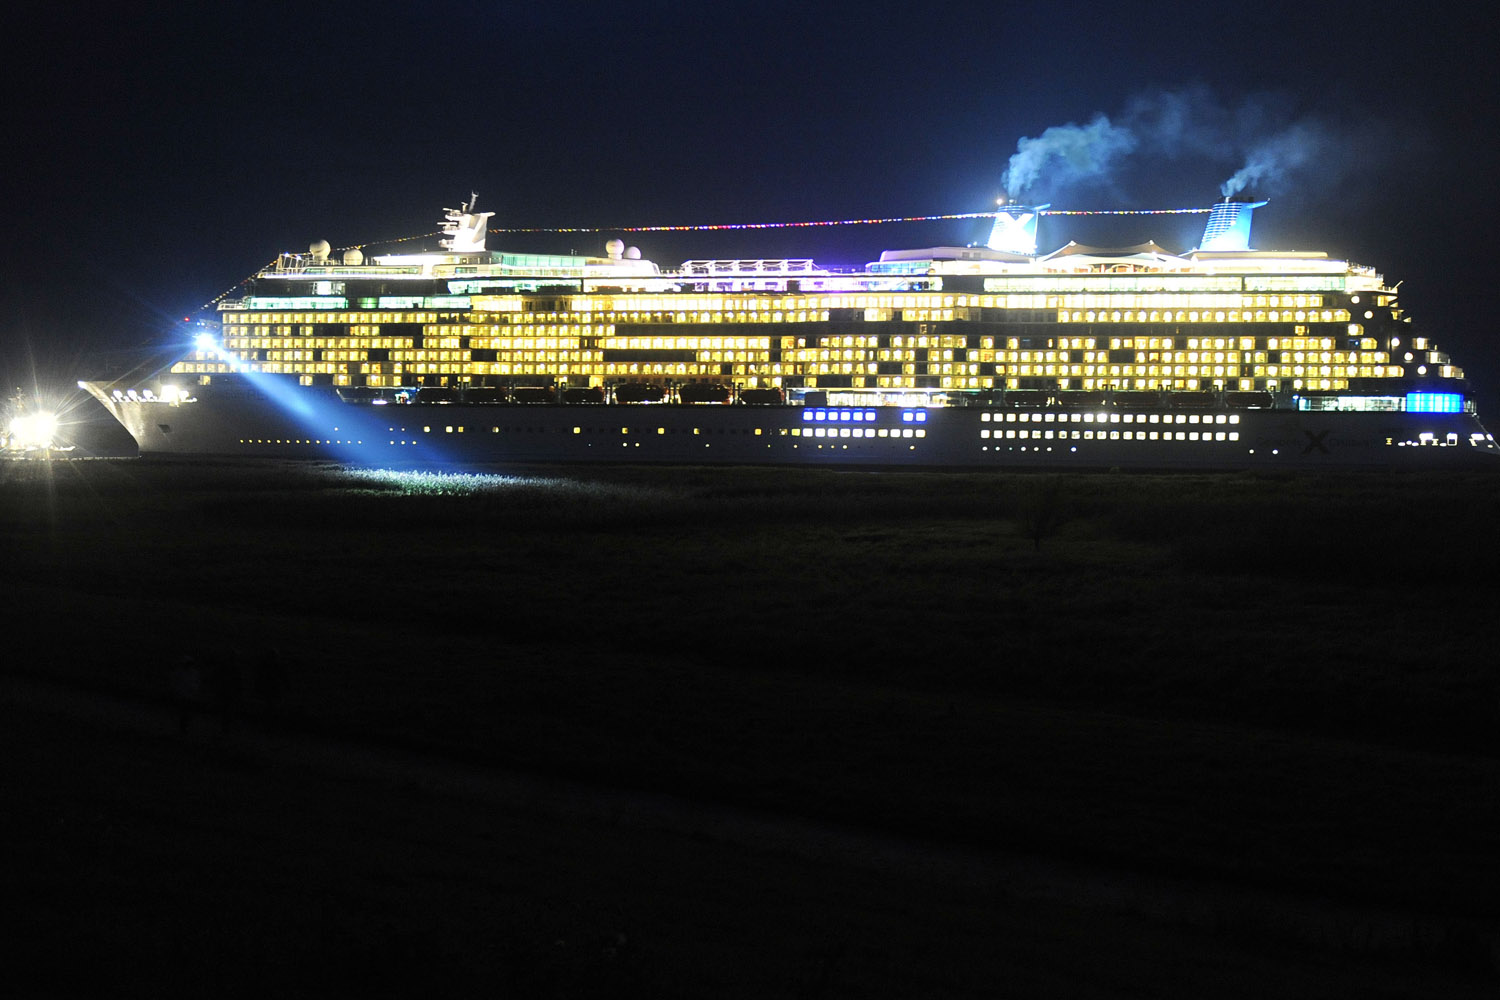 Sept. 16, 2012. The new cruise ship 'Celebrity Reflection' is transferred from the fitting pier of the Meyer shipyard in Papenburg, Germany via the Ems River to the North Sea.